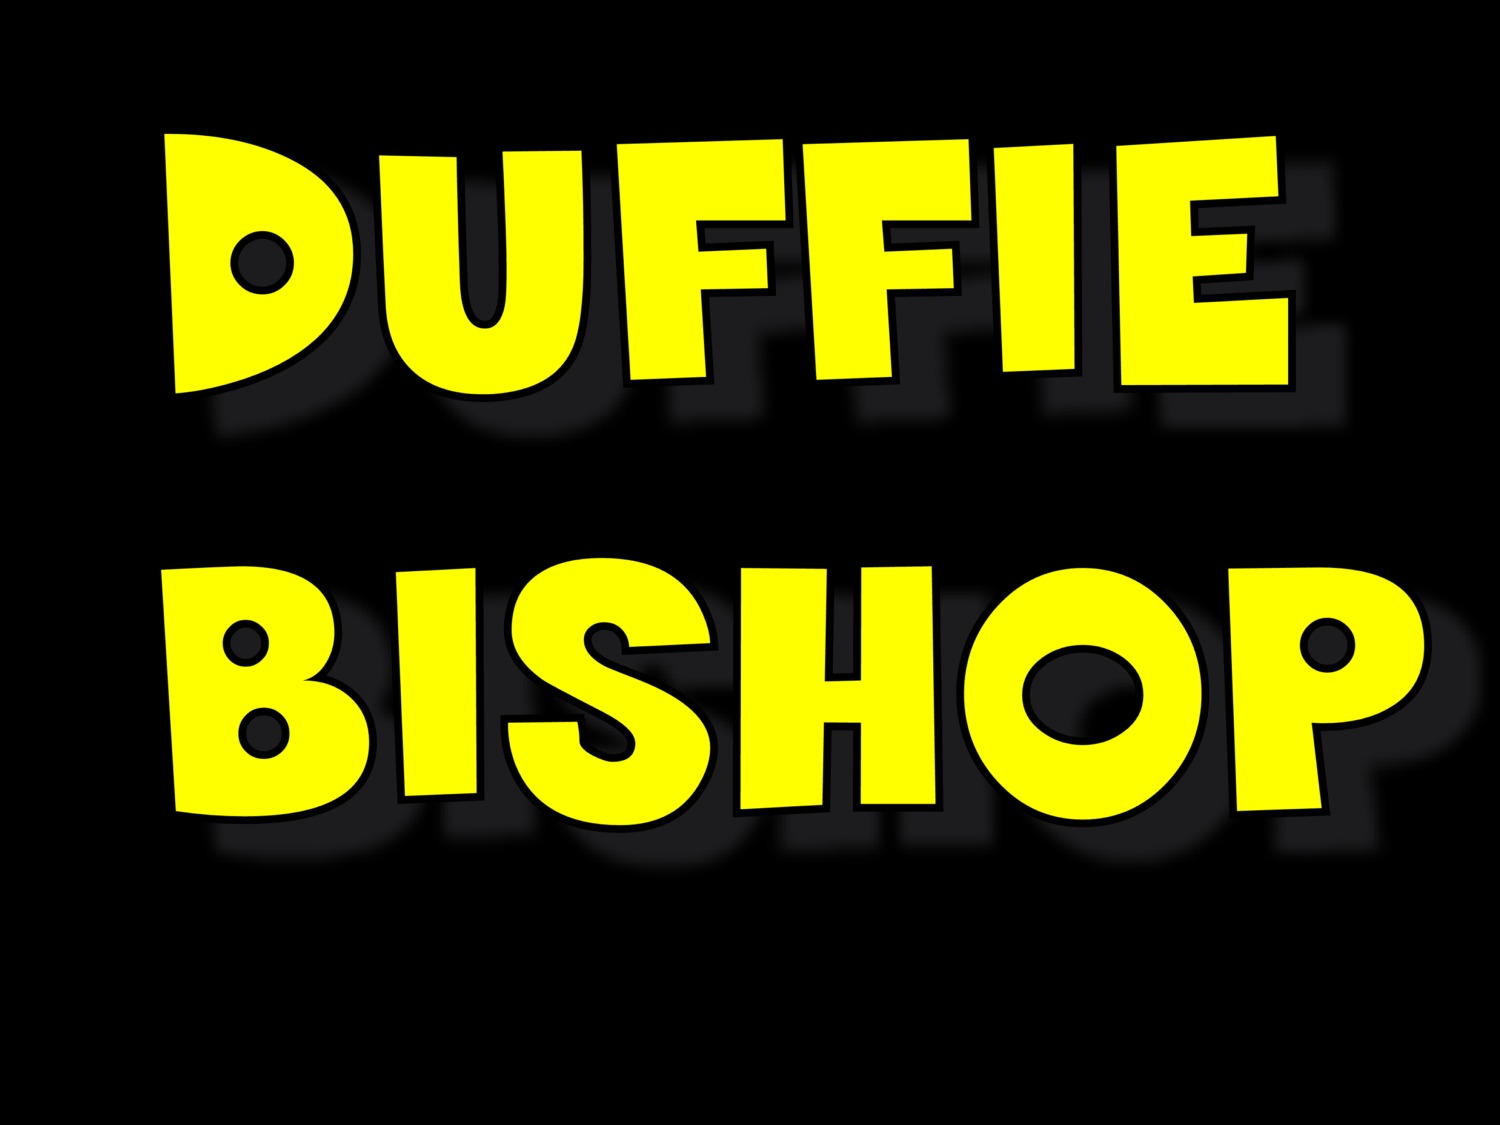 DUFFIE BISHOP